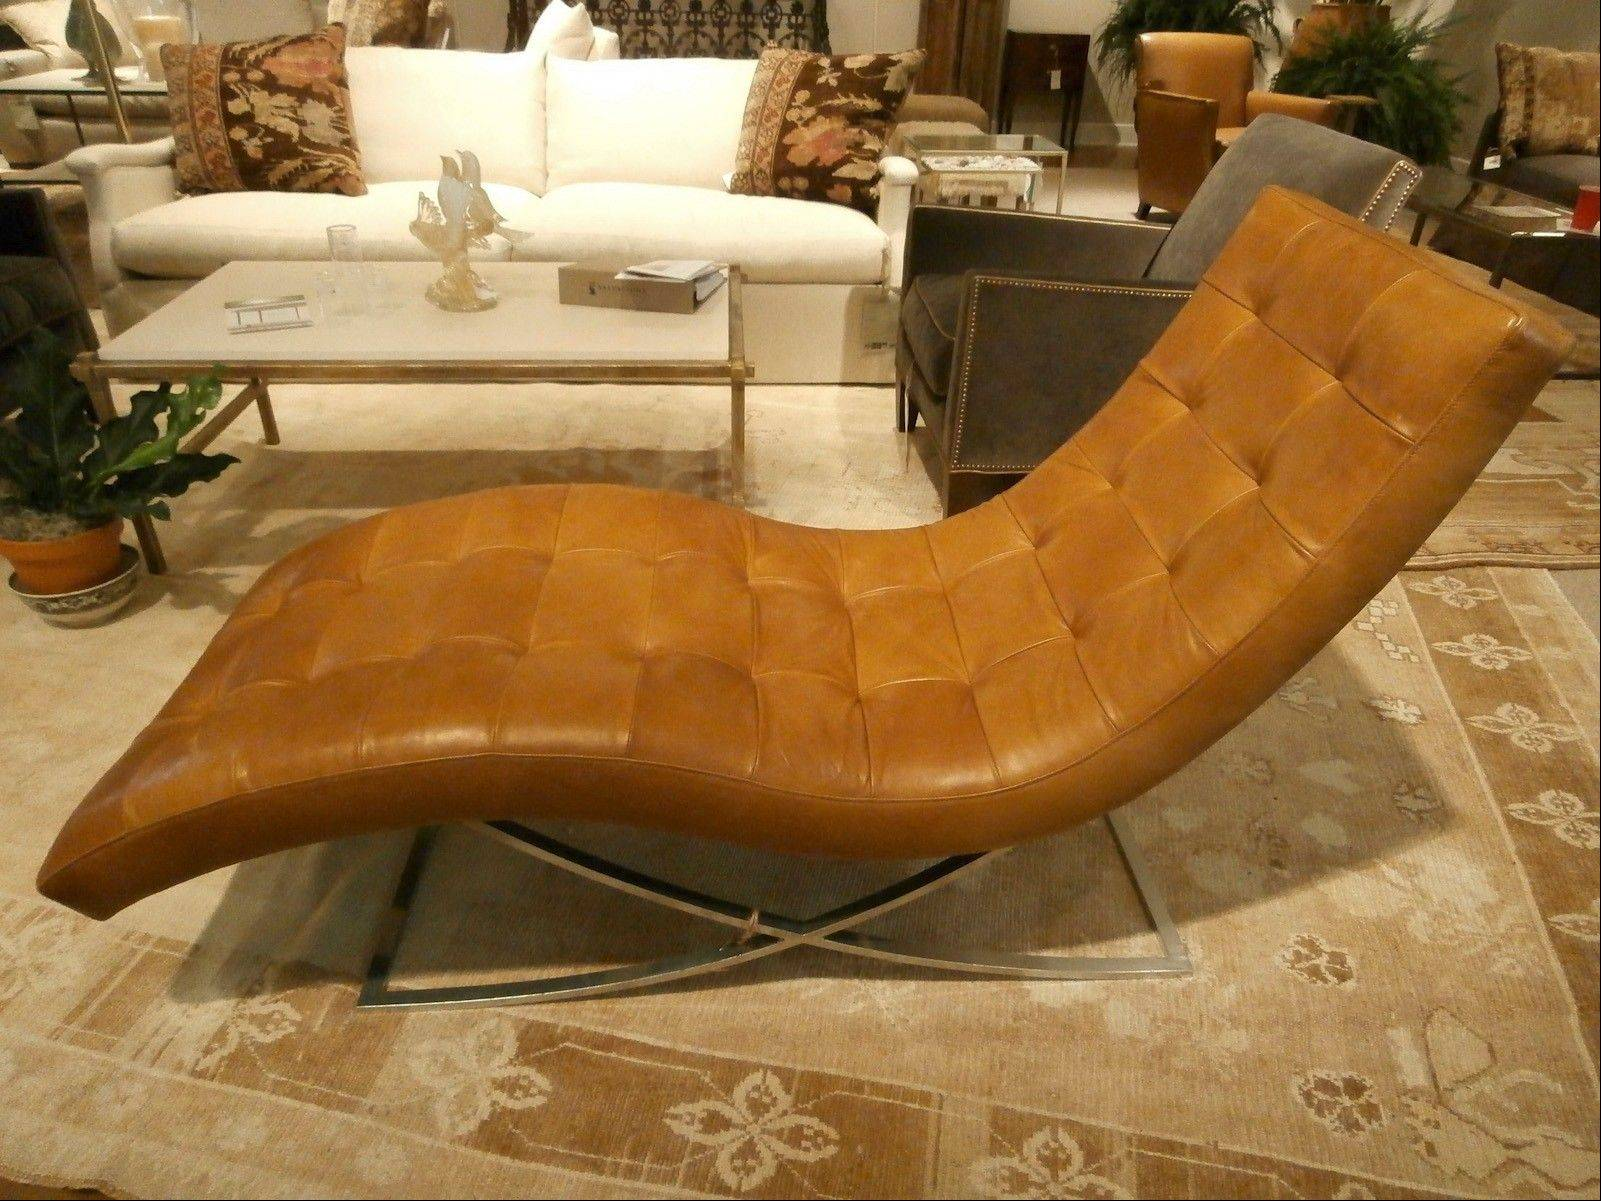 Lee Industries' stainless-steel and leather chaise.